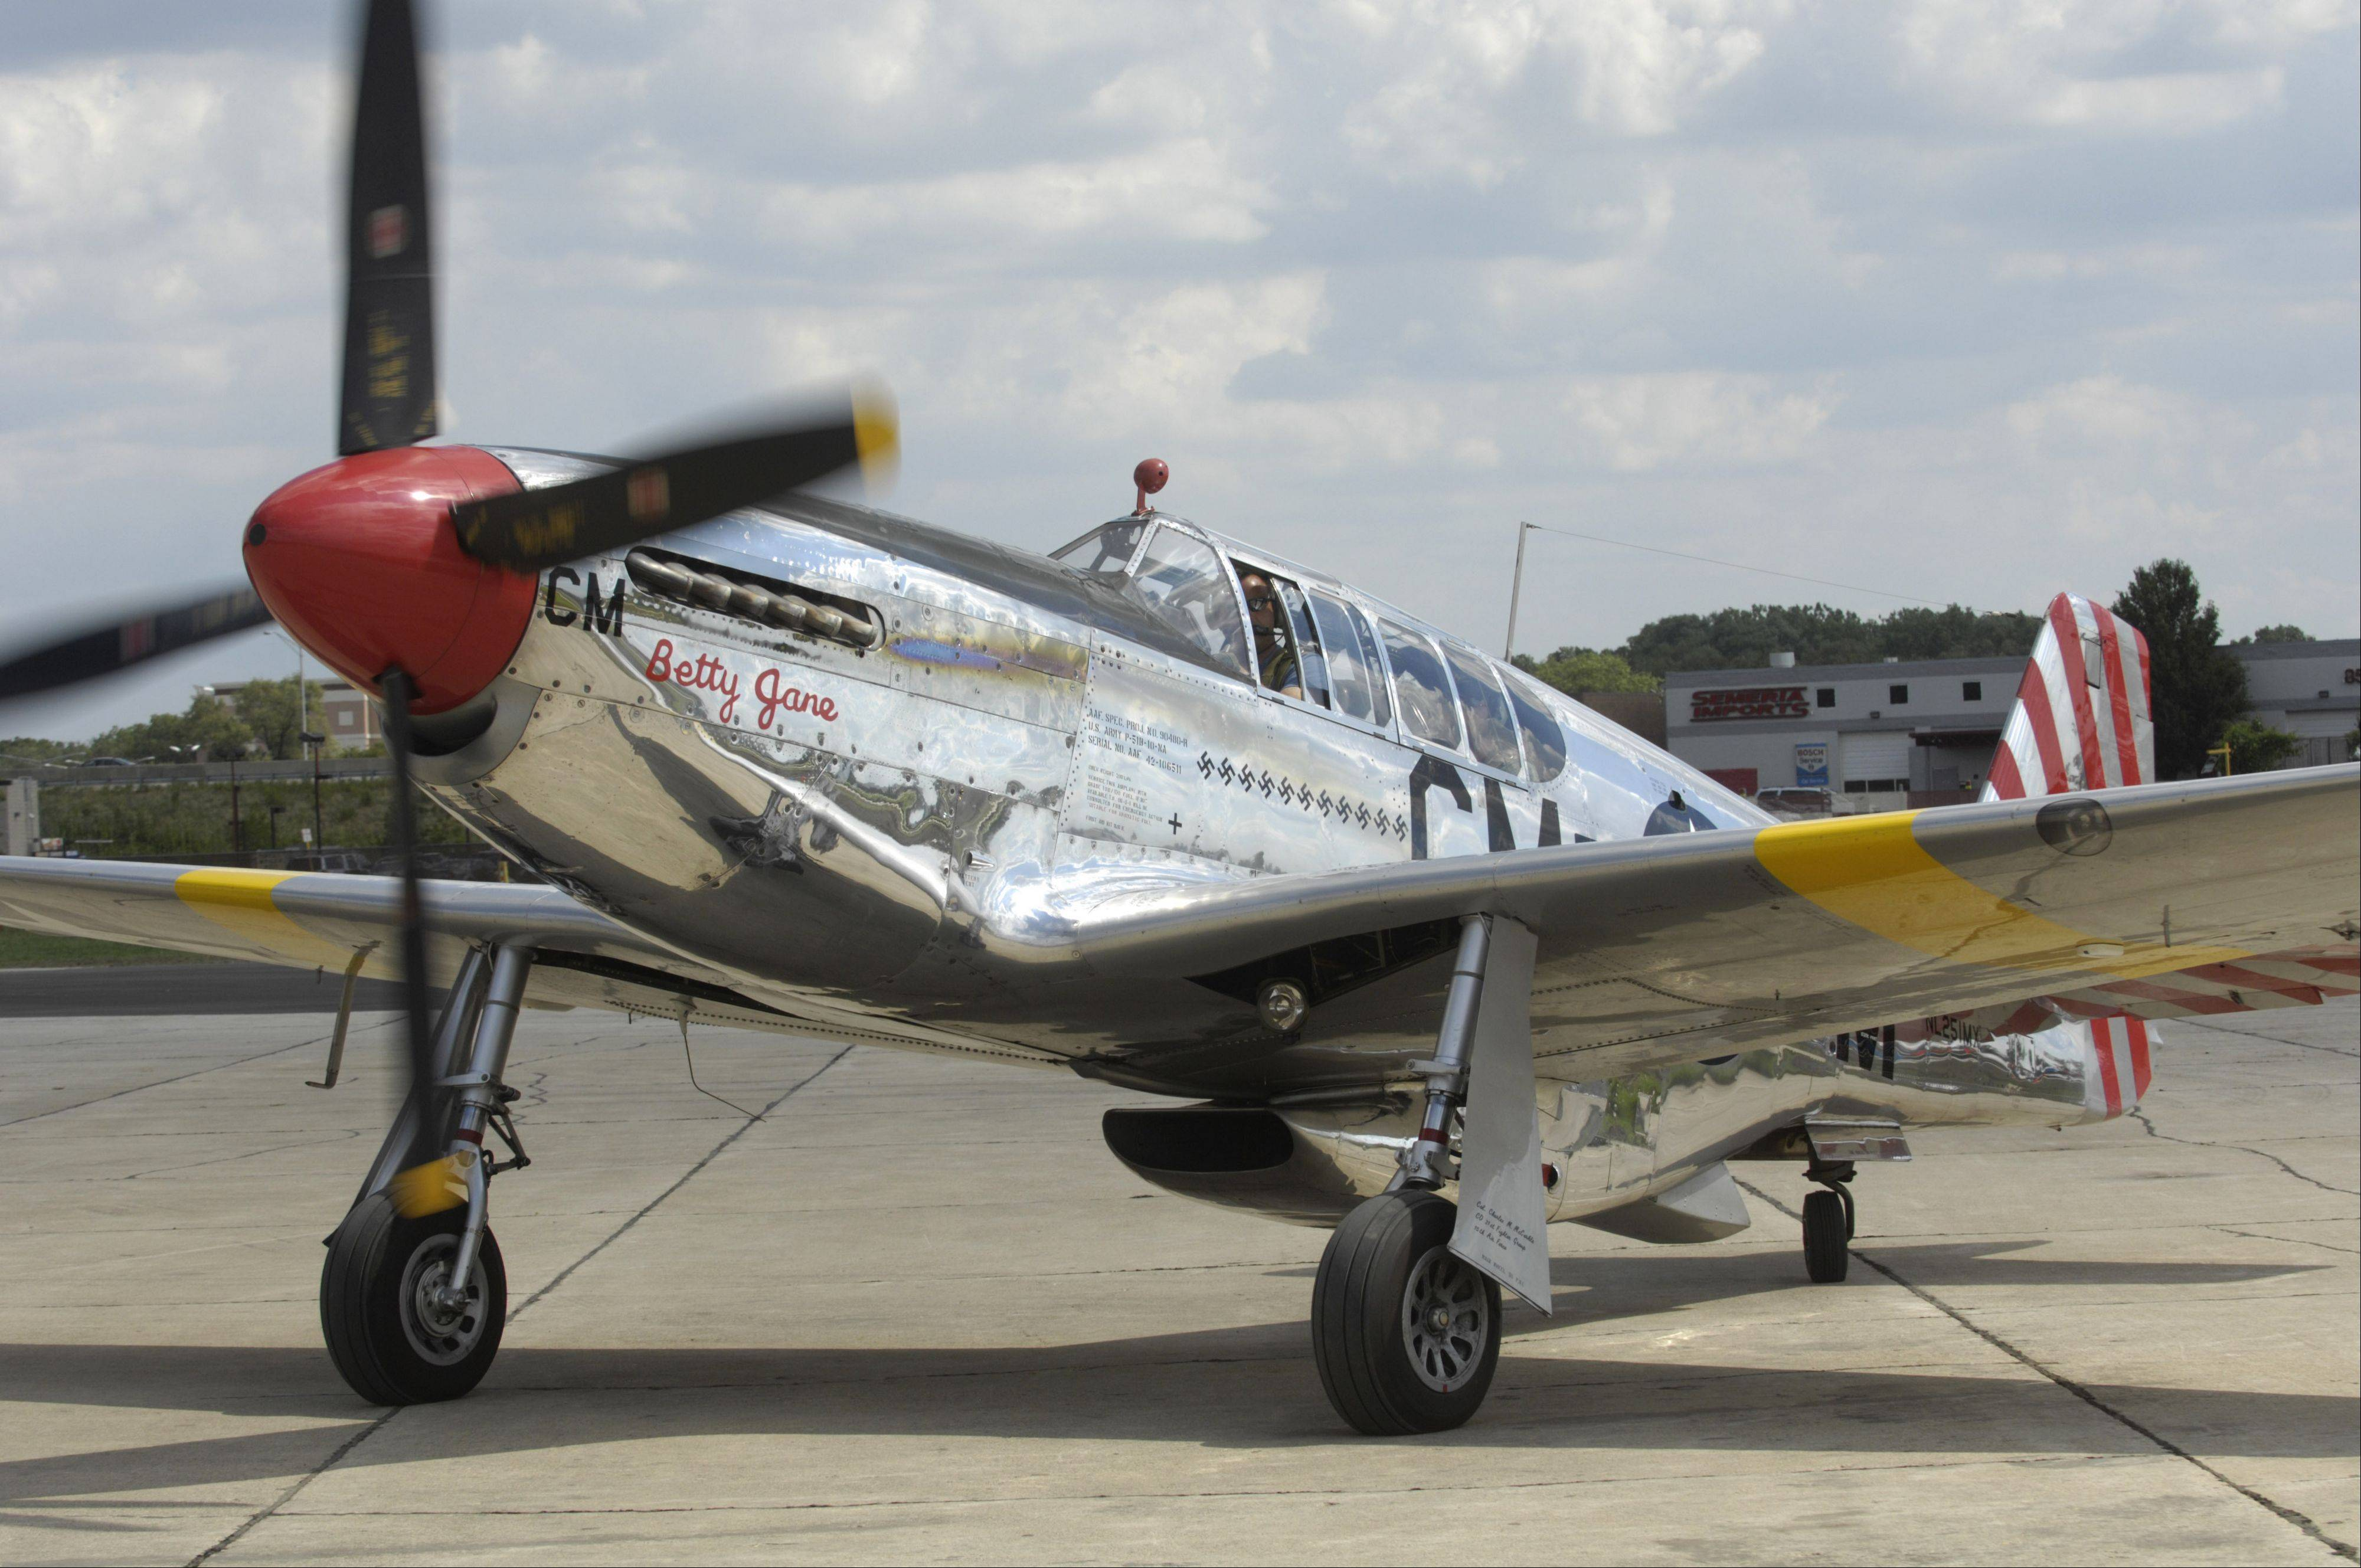 A P-51 Mustang is one of three World War II planes being displayed for the Wings of Freedom stop at Chicago Executive Airport this weekend.